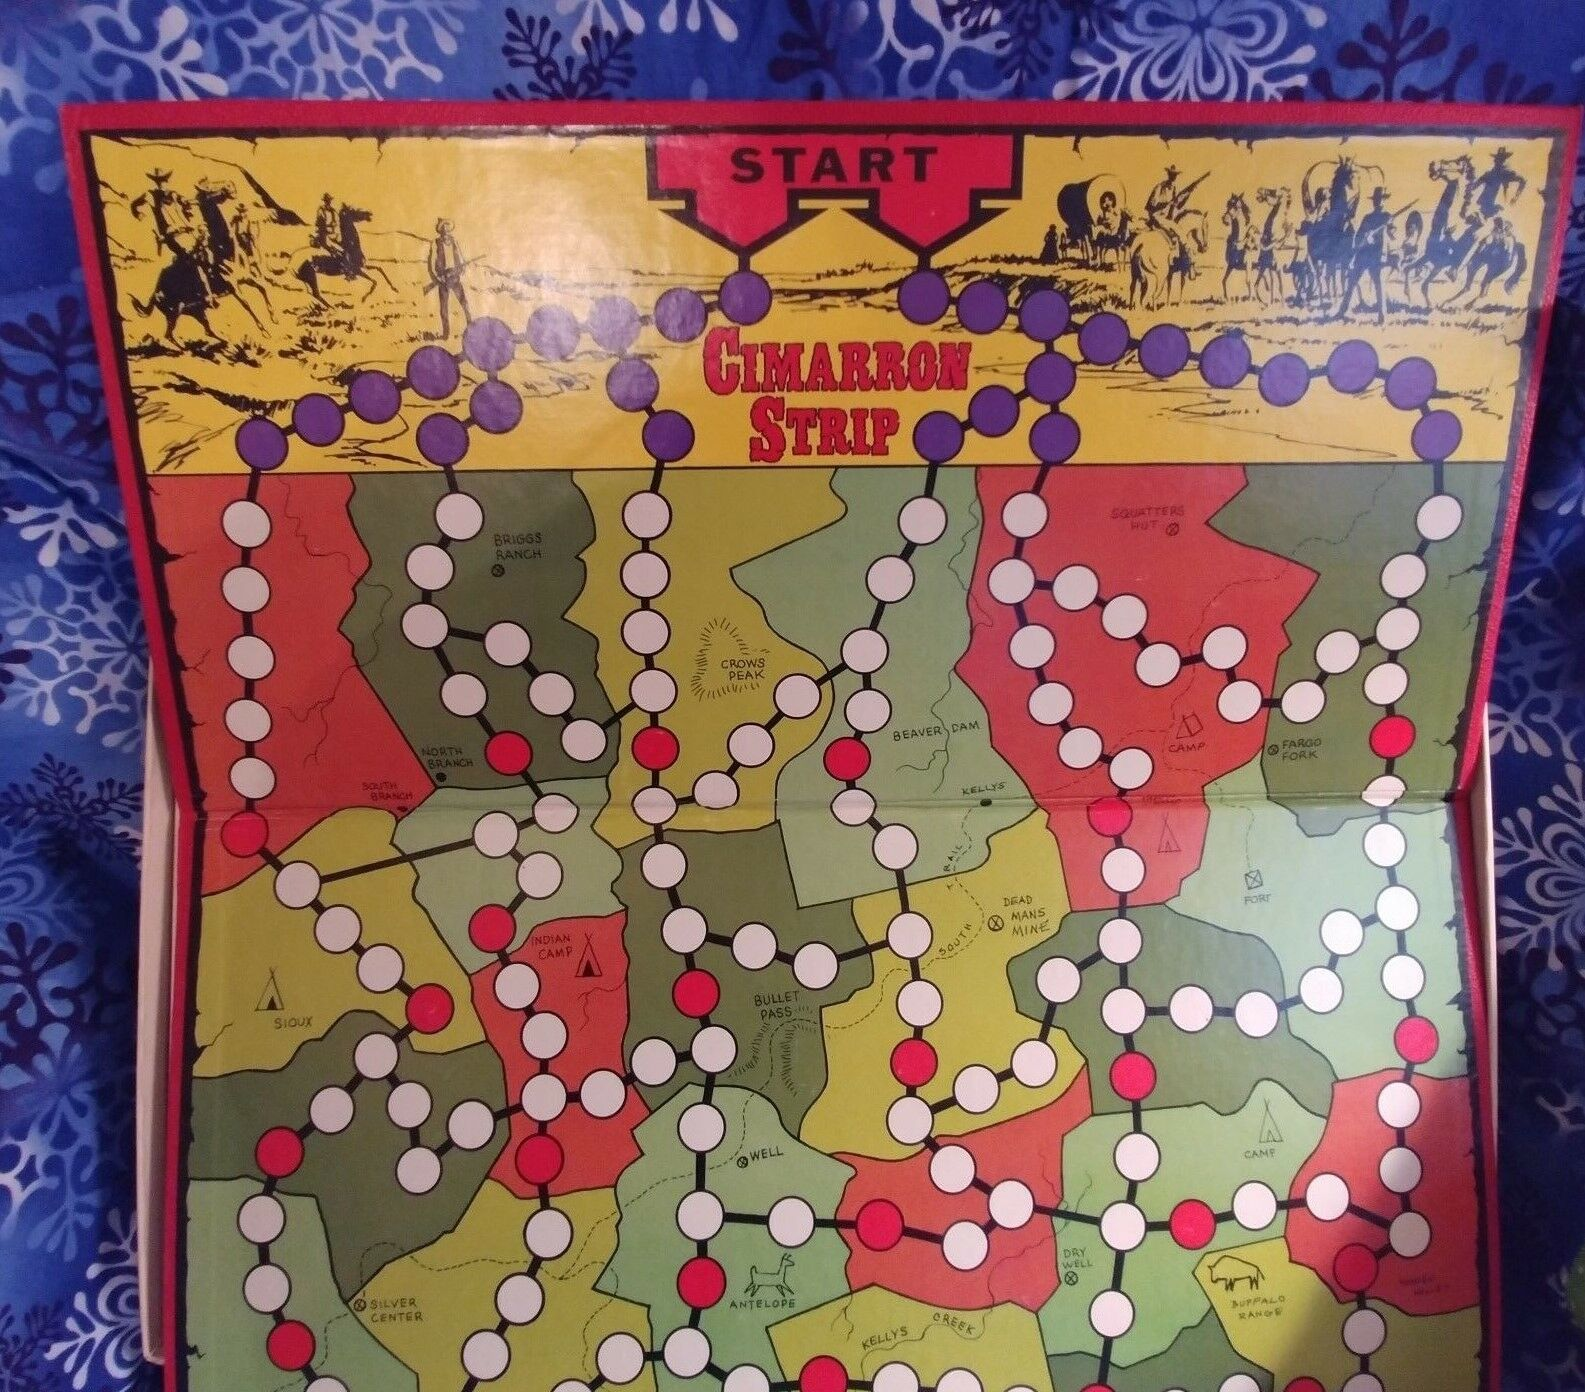 1967 1967 1967 Cibrown Strip Board Game With Pieces Still Intact Extremely Rare UNUSED   b25310